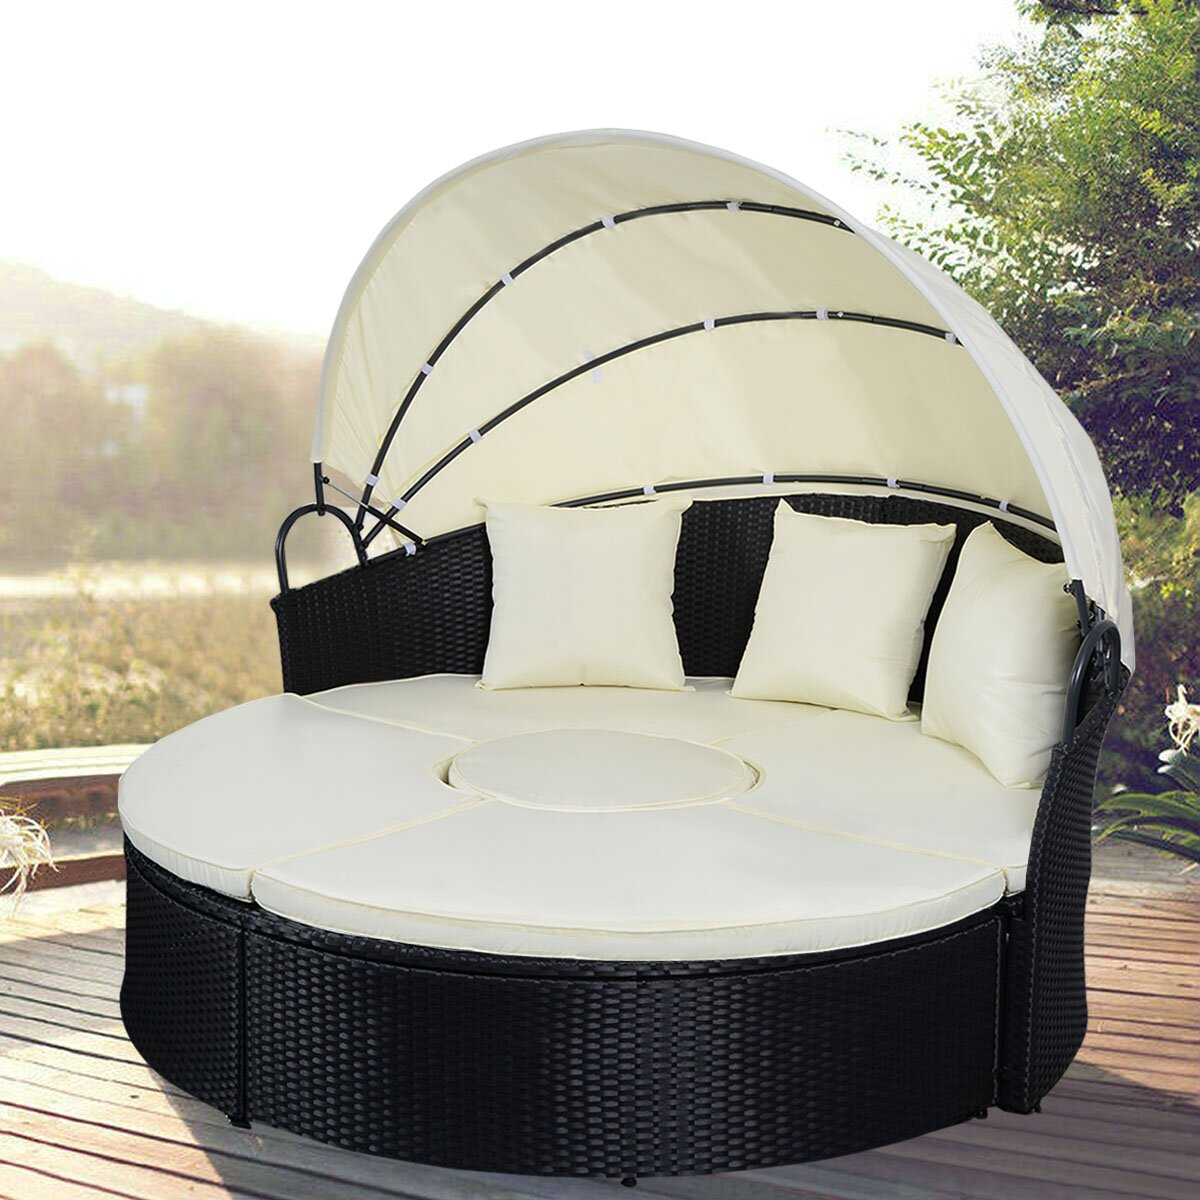 Gymax Rattan Wicker Round Retractable Canopy Daybed Sofa Furniture Set Outdoor Patio